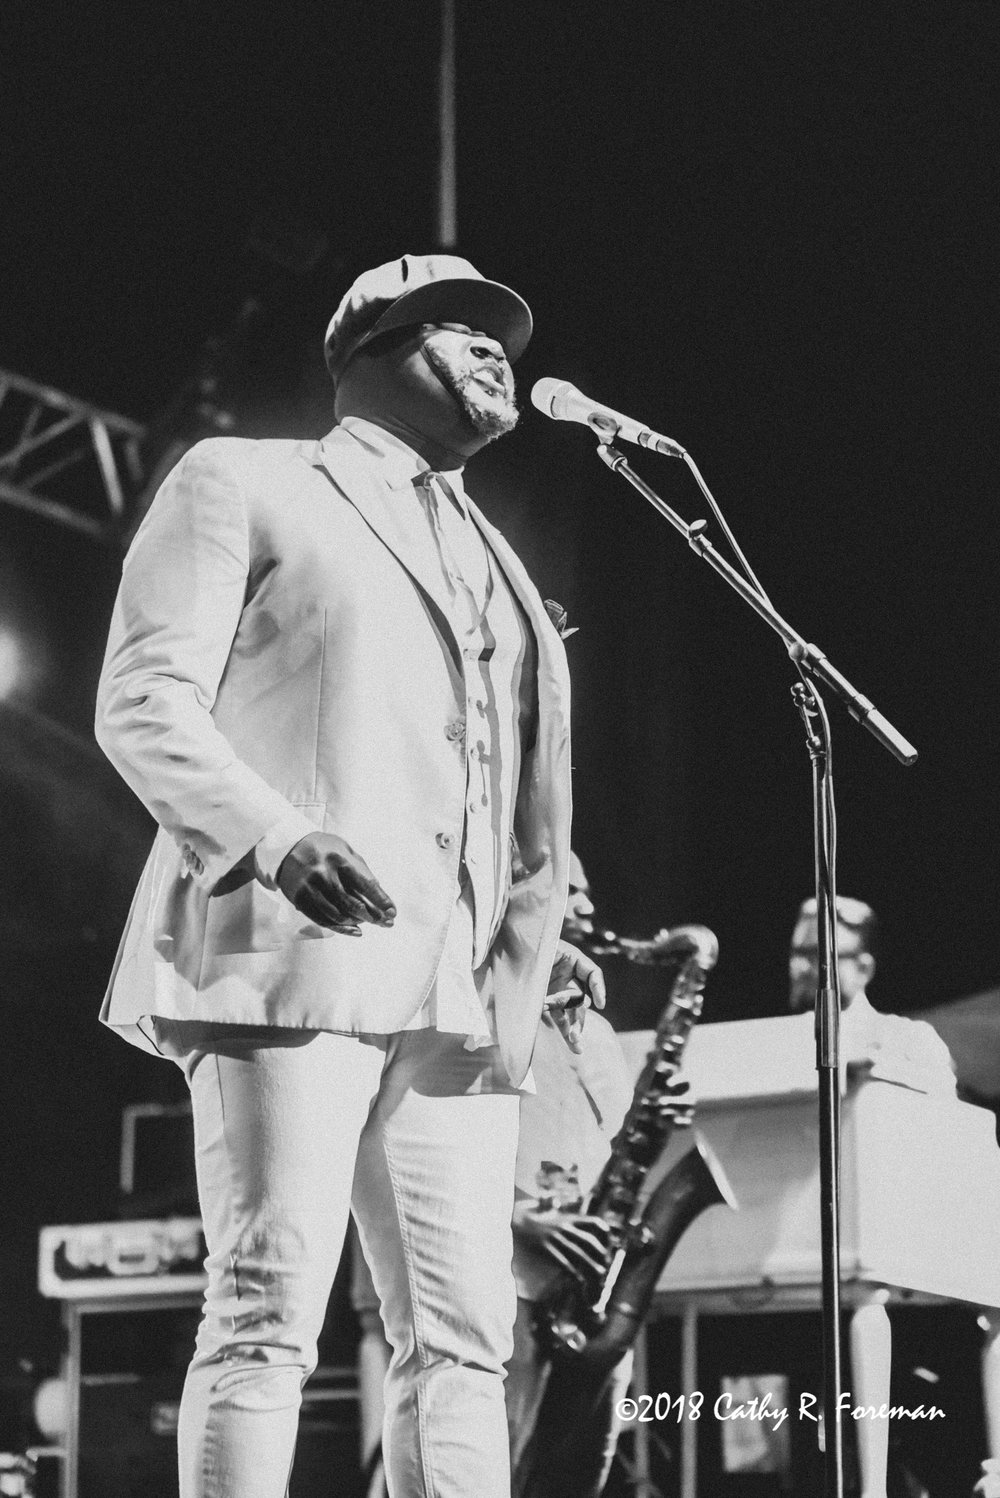 Gregory Porter | image by: Cathy R. Foreman